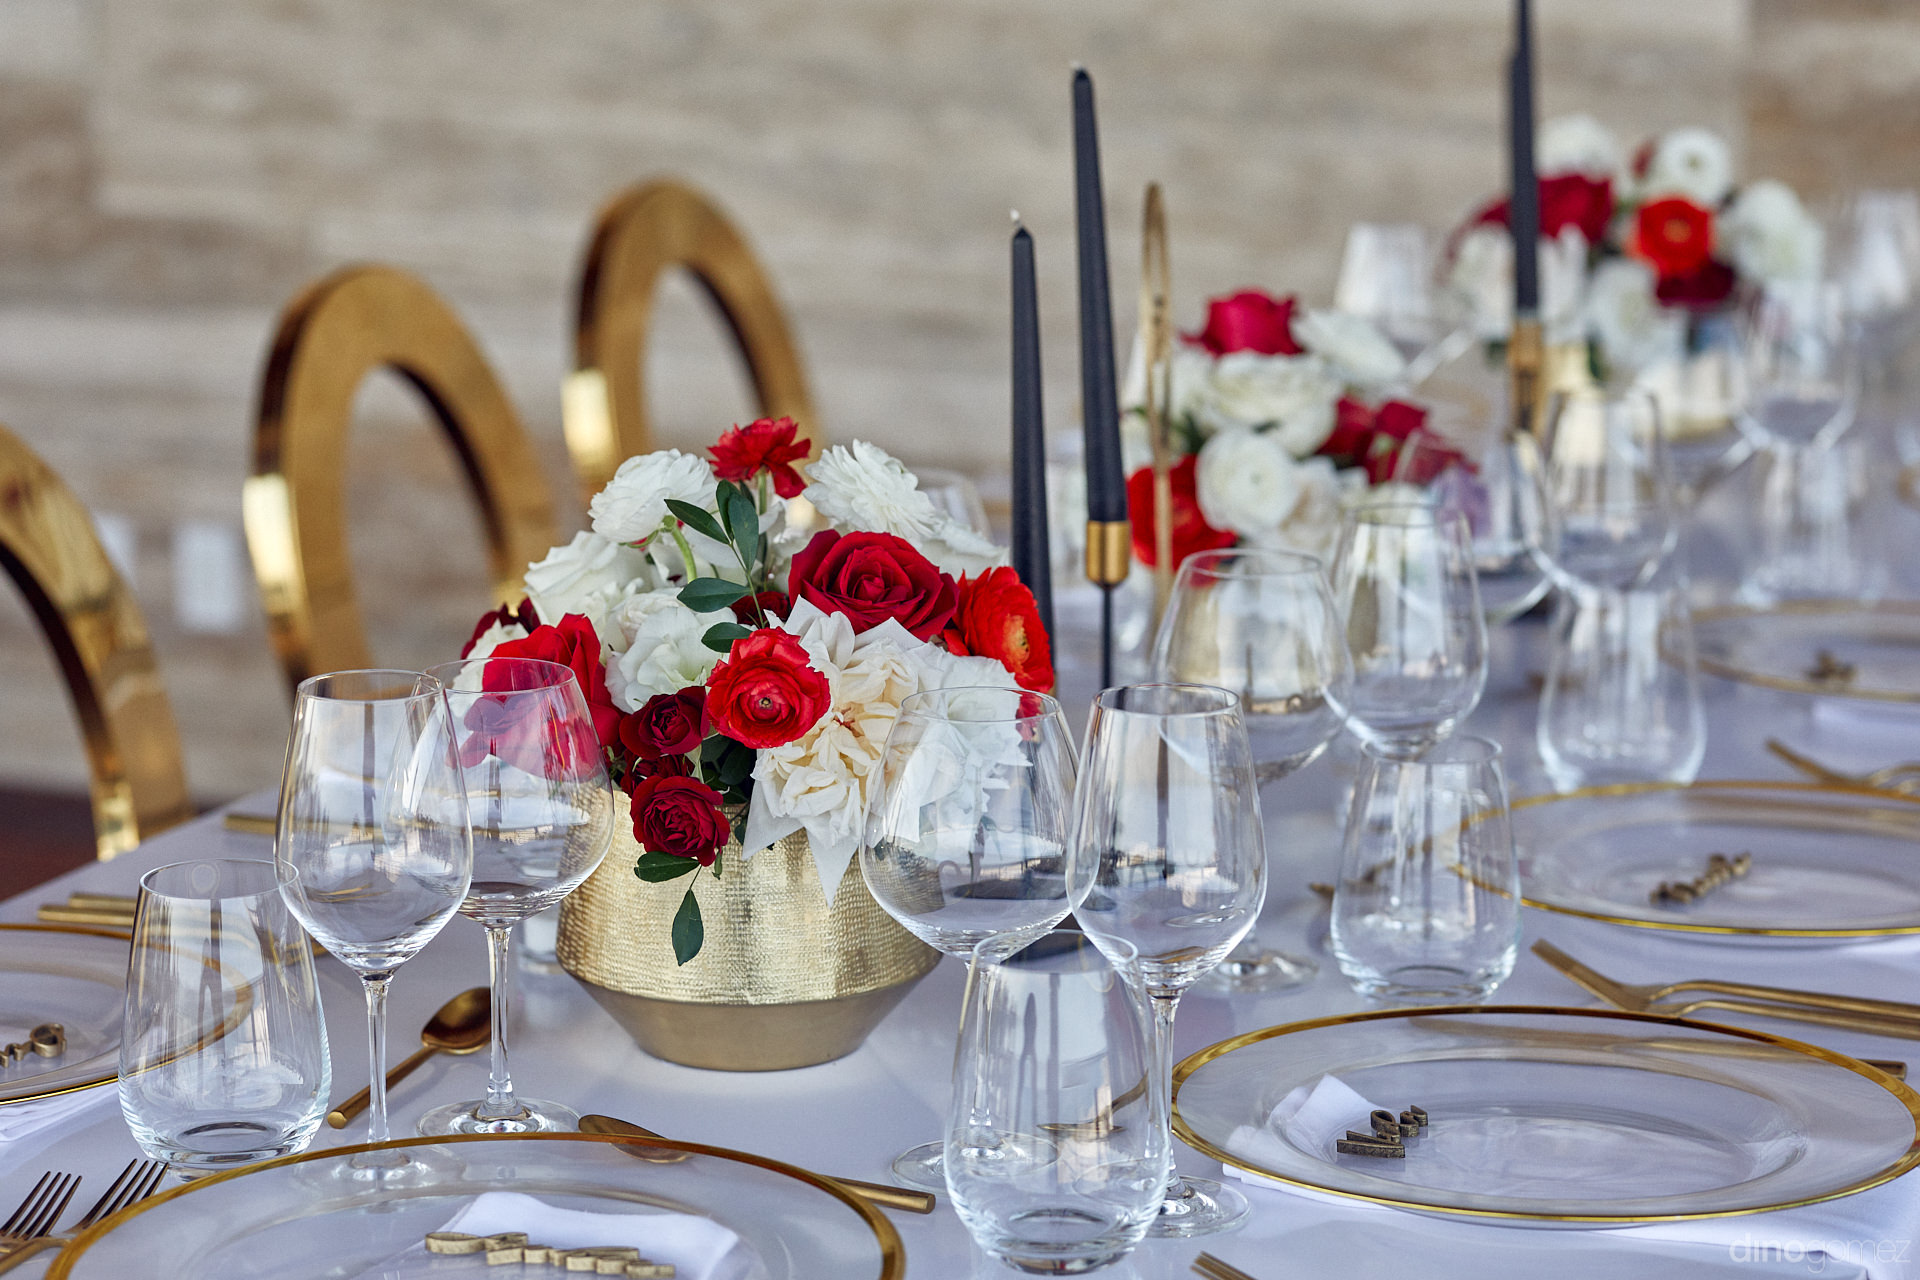 Cabo Wedding Decor And Rentals For Indian & Persian Weddings